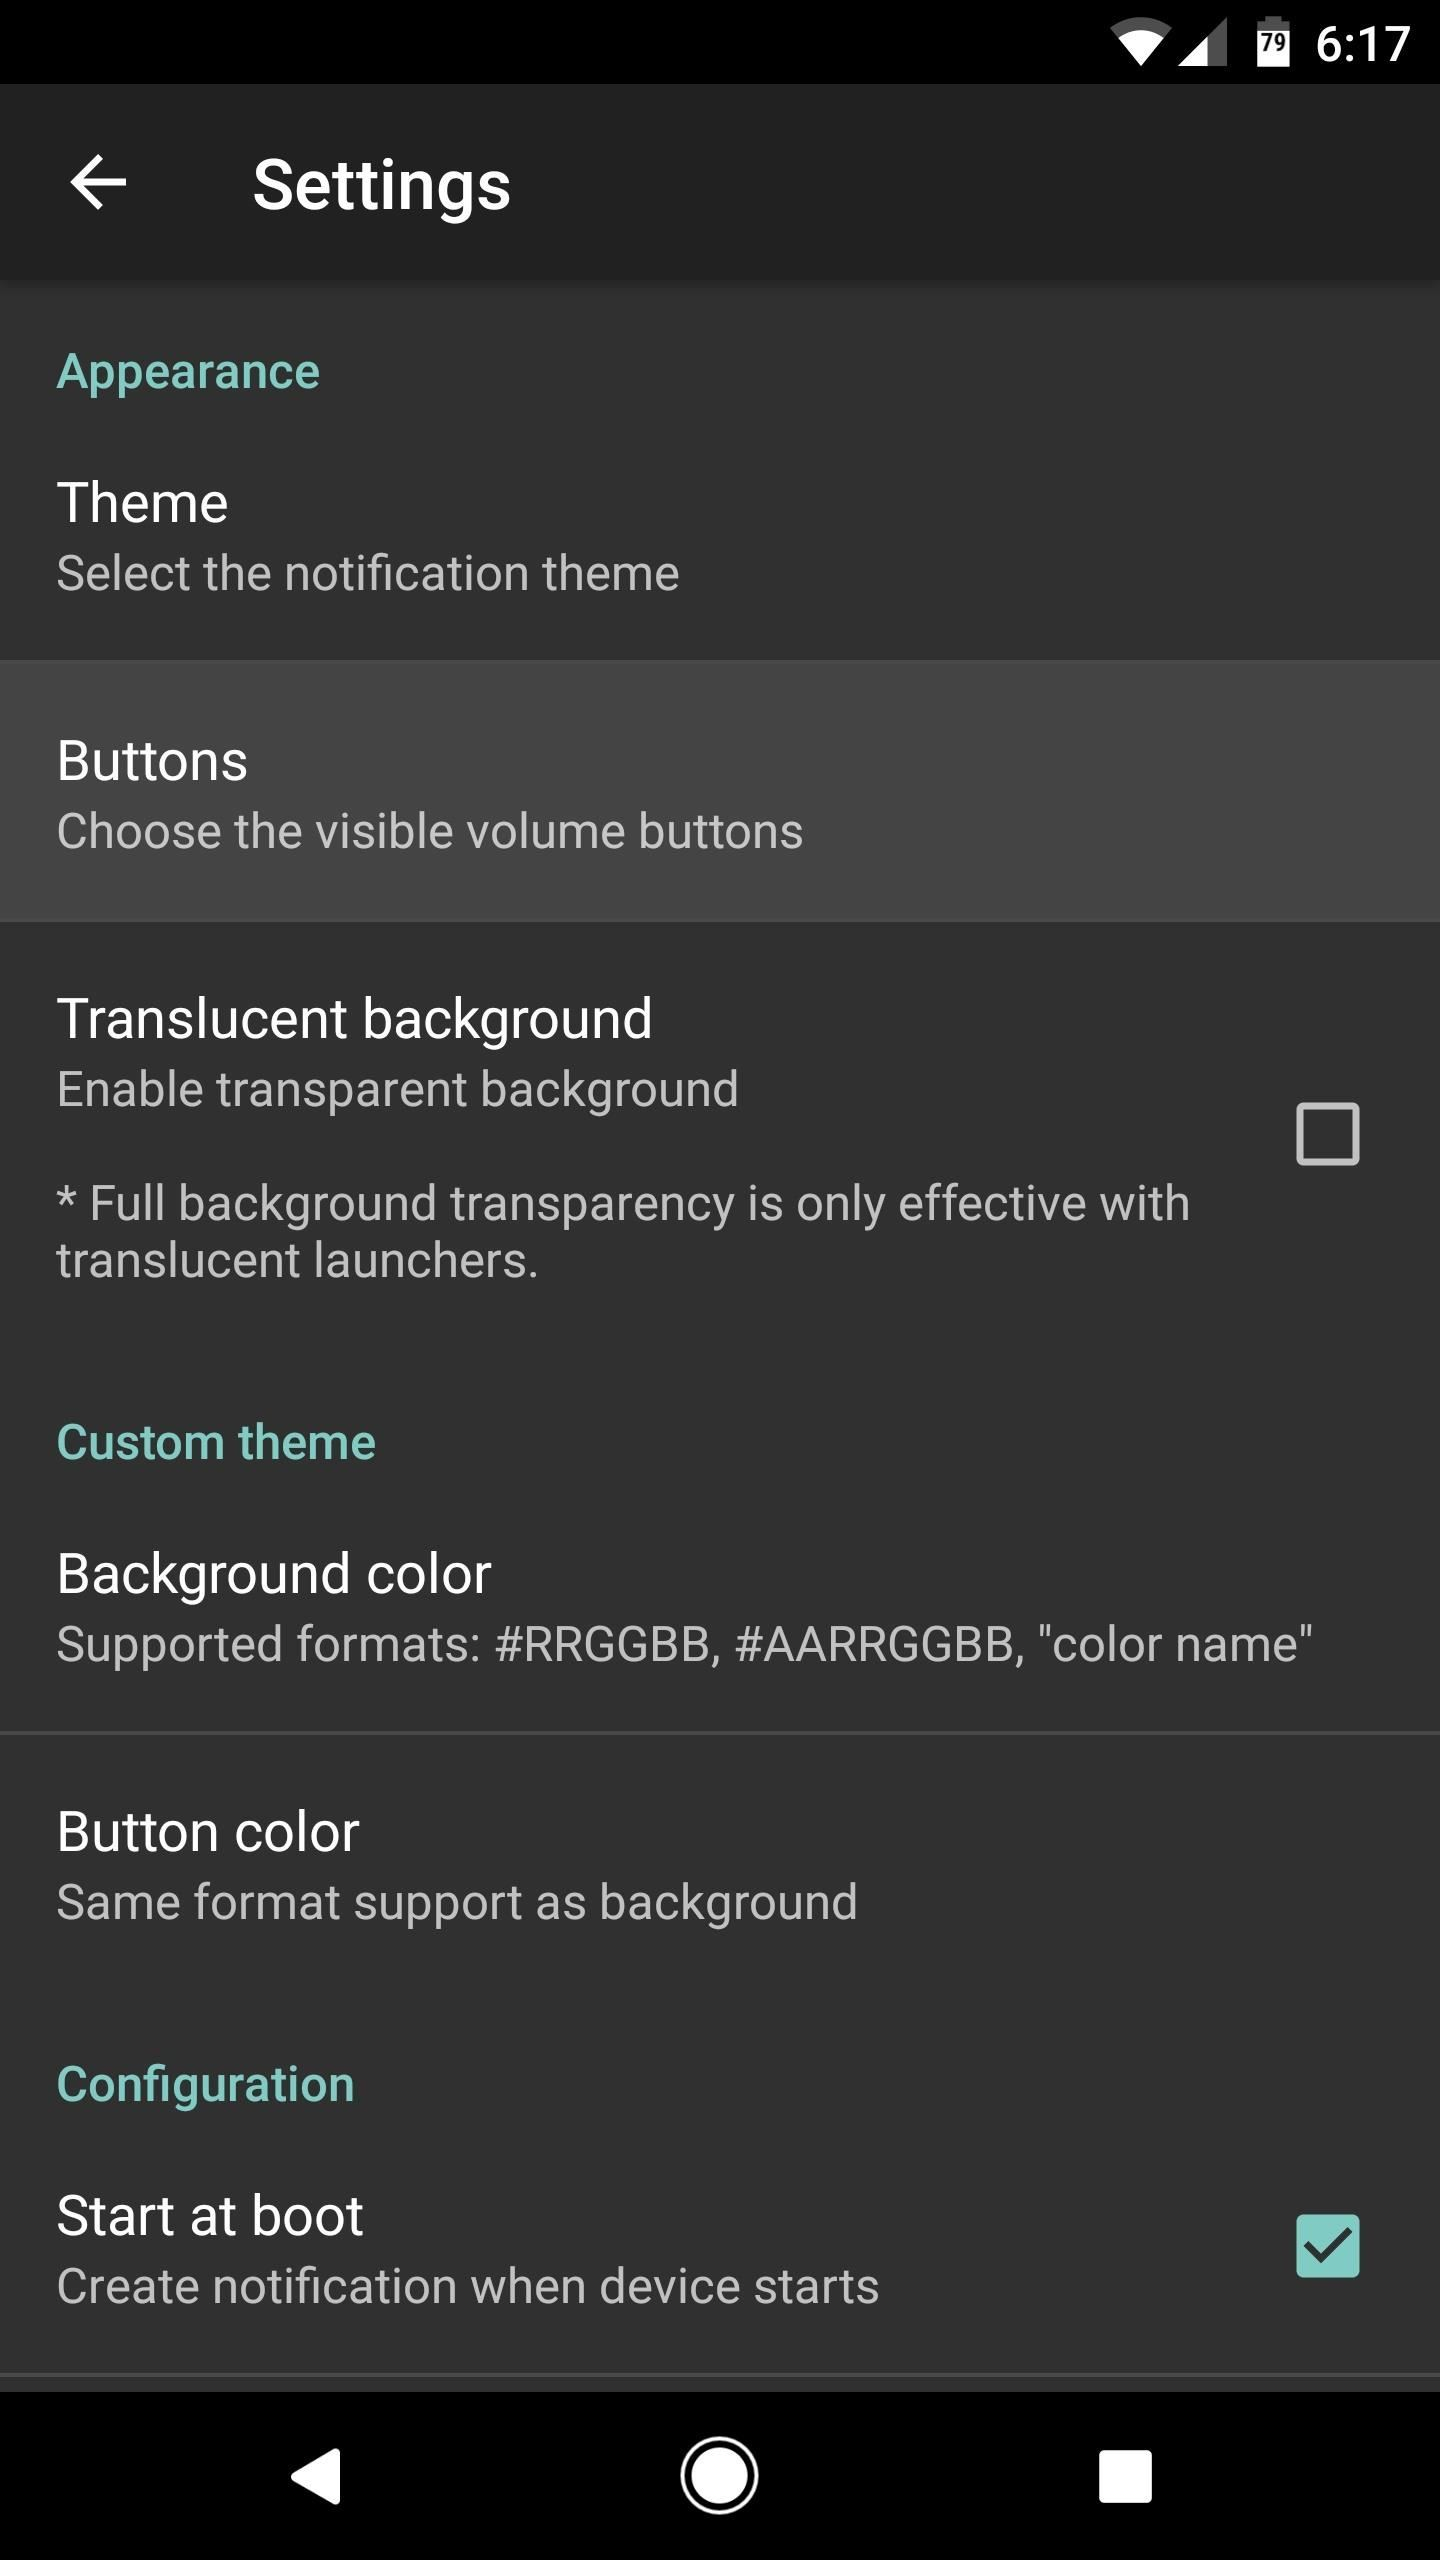 Control Media, Ringtone & Call Volume from Your Notification Tray in One Tap